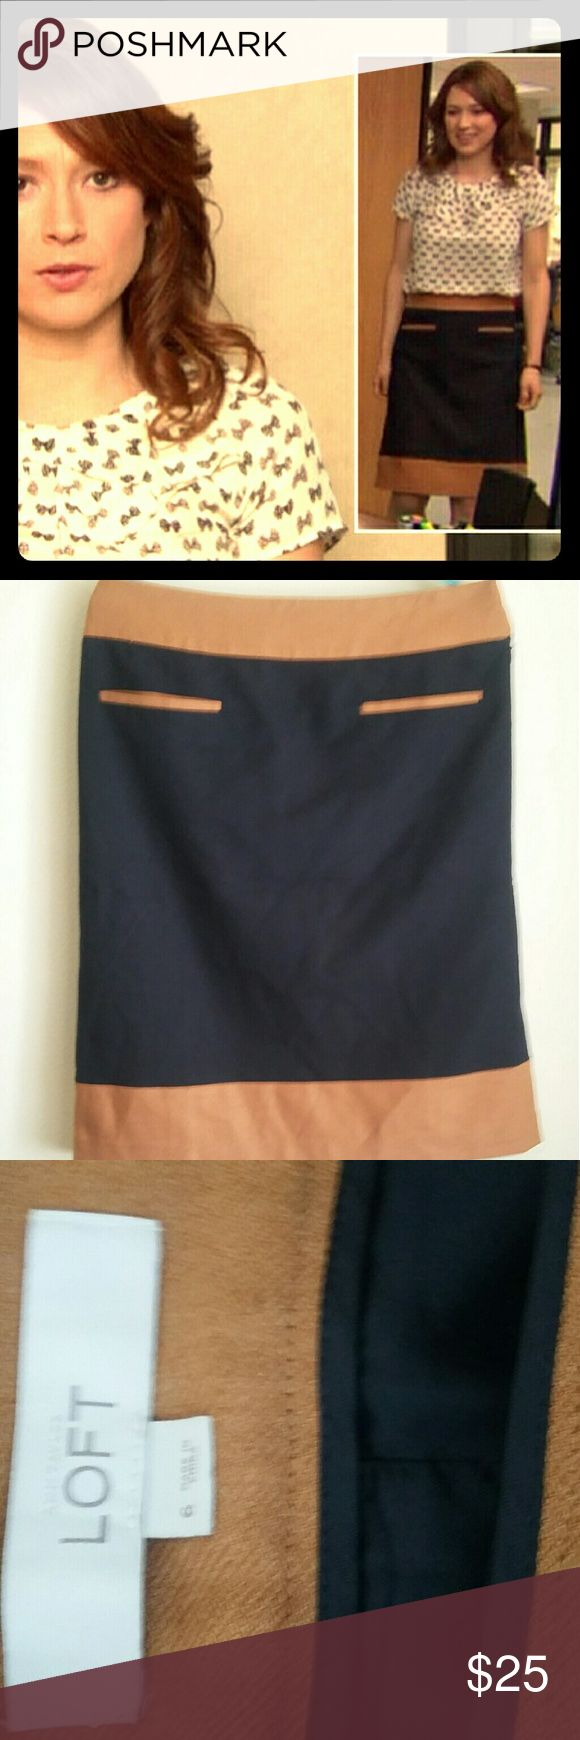 Get Erin's Skirt! We all know Erin had the cutest outfits during her time on The Office and now you can own a bit of that cuteness yourself, No receptionist job title required. This skirt is in perfect condition and waiting for a good home! Ann Taylor Skirts Midi #interviewoutfits